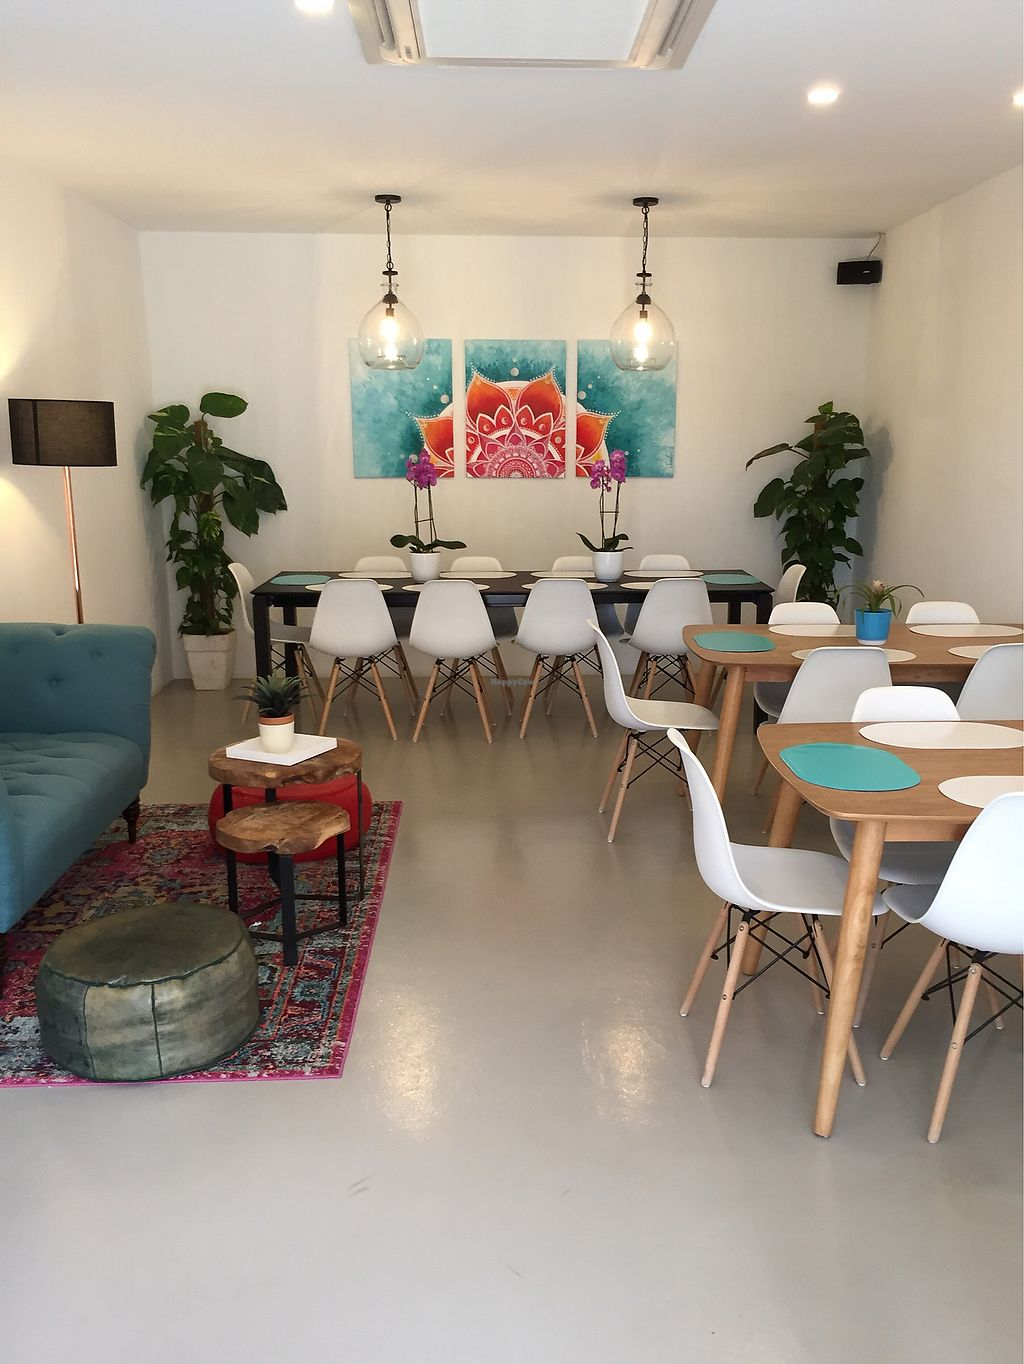 """Photo of Nourish Cafe  by <a href=""""/members/profile/Eefie"""">Eefie</a> <br/>Nourish <br/> October 11, 2017  - <a href='/contact/abuse/image/84422/314119'>Report</a>"""